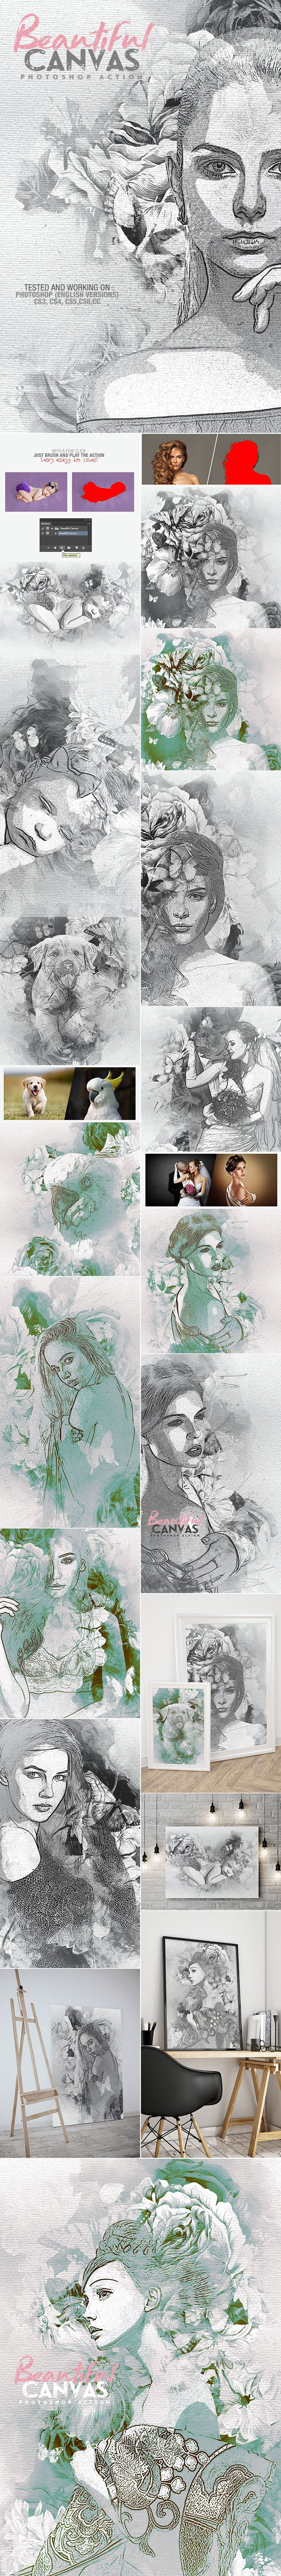 Photoshop Actions & Templates: Artistic Photo FX Bundle - preview beautiful canvas photoshop action design by amorjesu